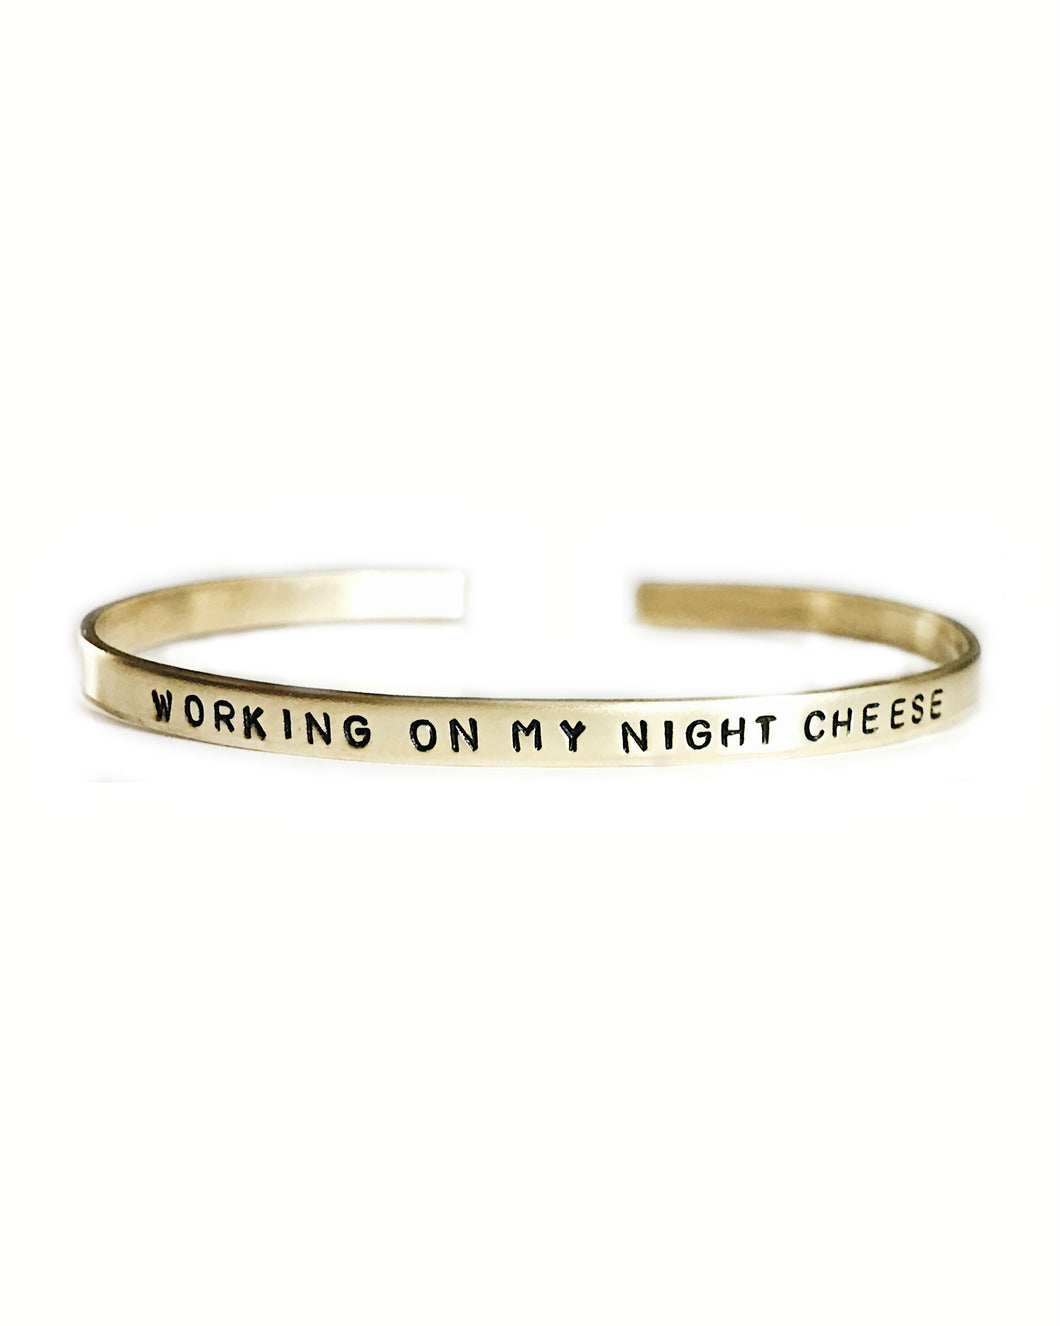 Working On My Night Cheese Handstamped Skinny Cuff